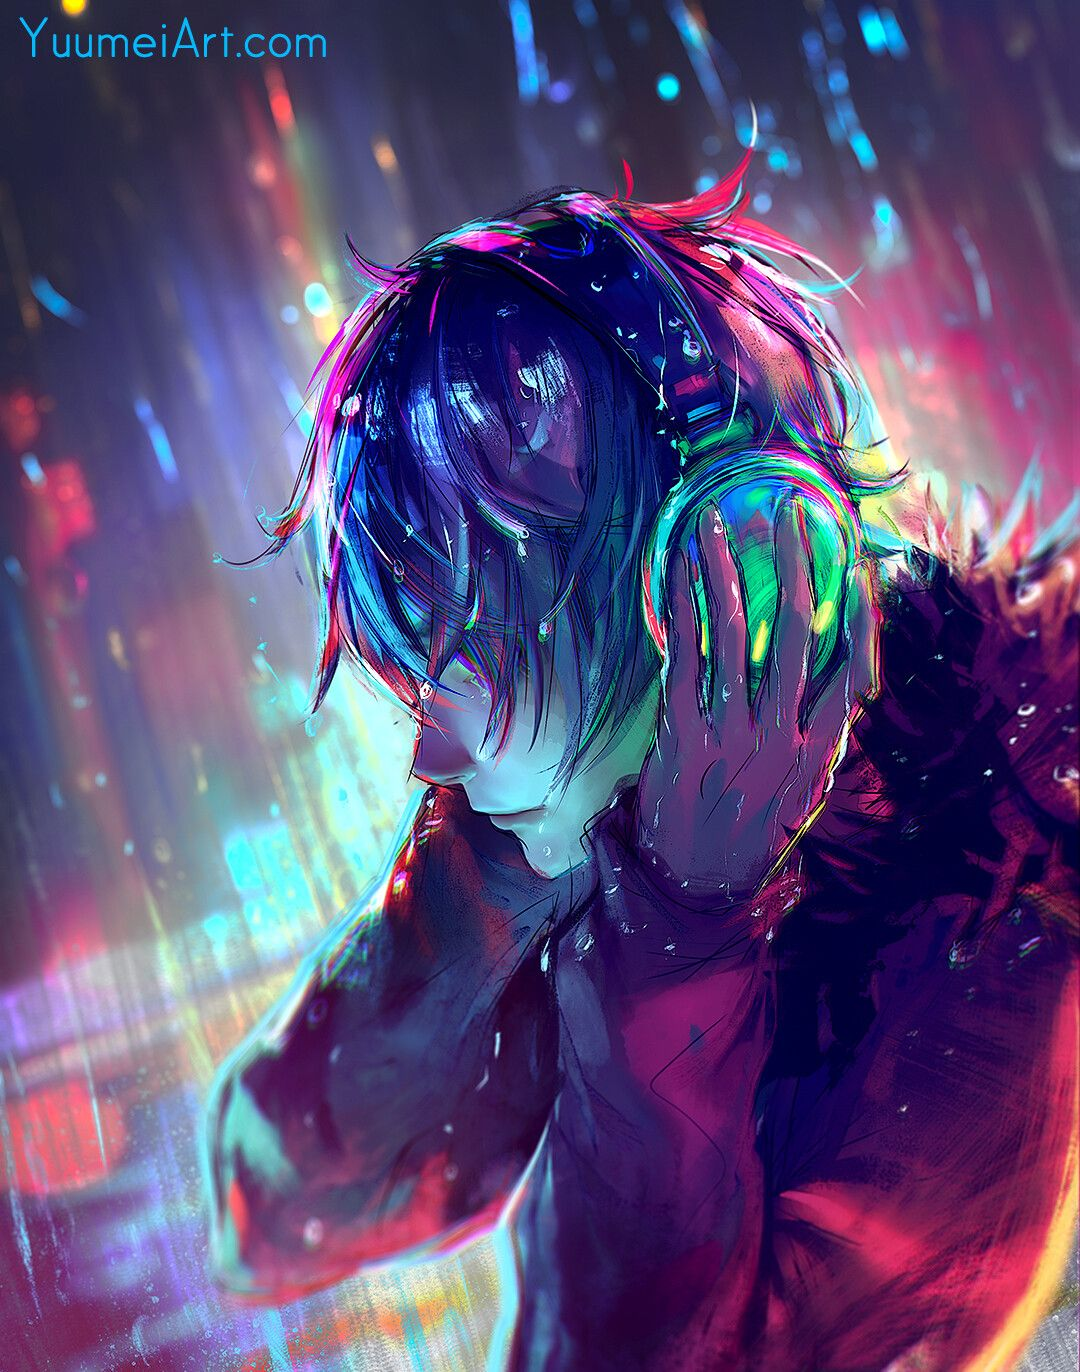 Muted Sound, (Yuumei) Wenqing Yan on ArtStation at https